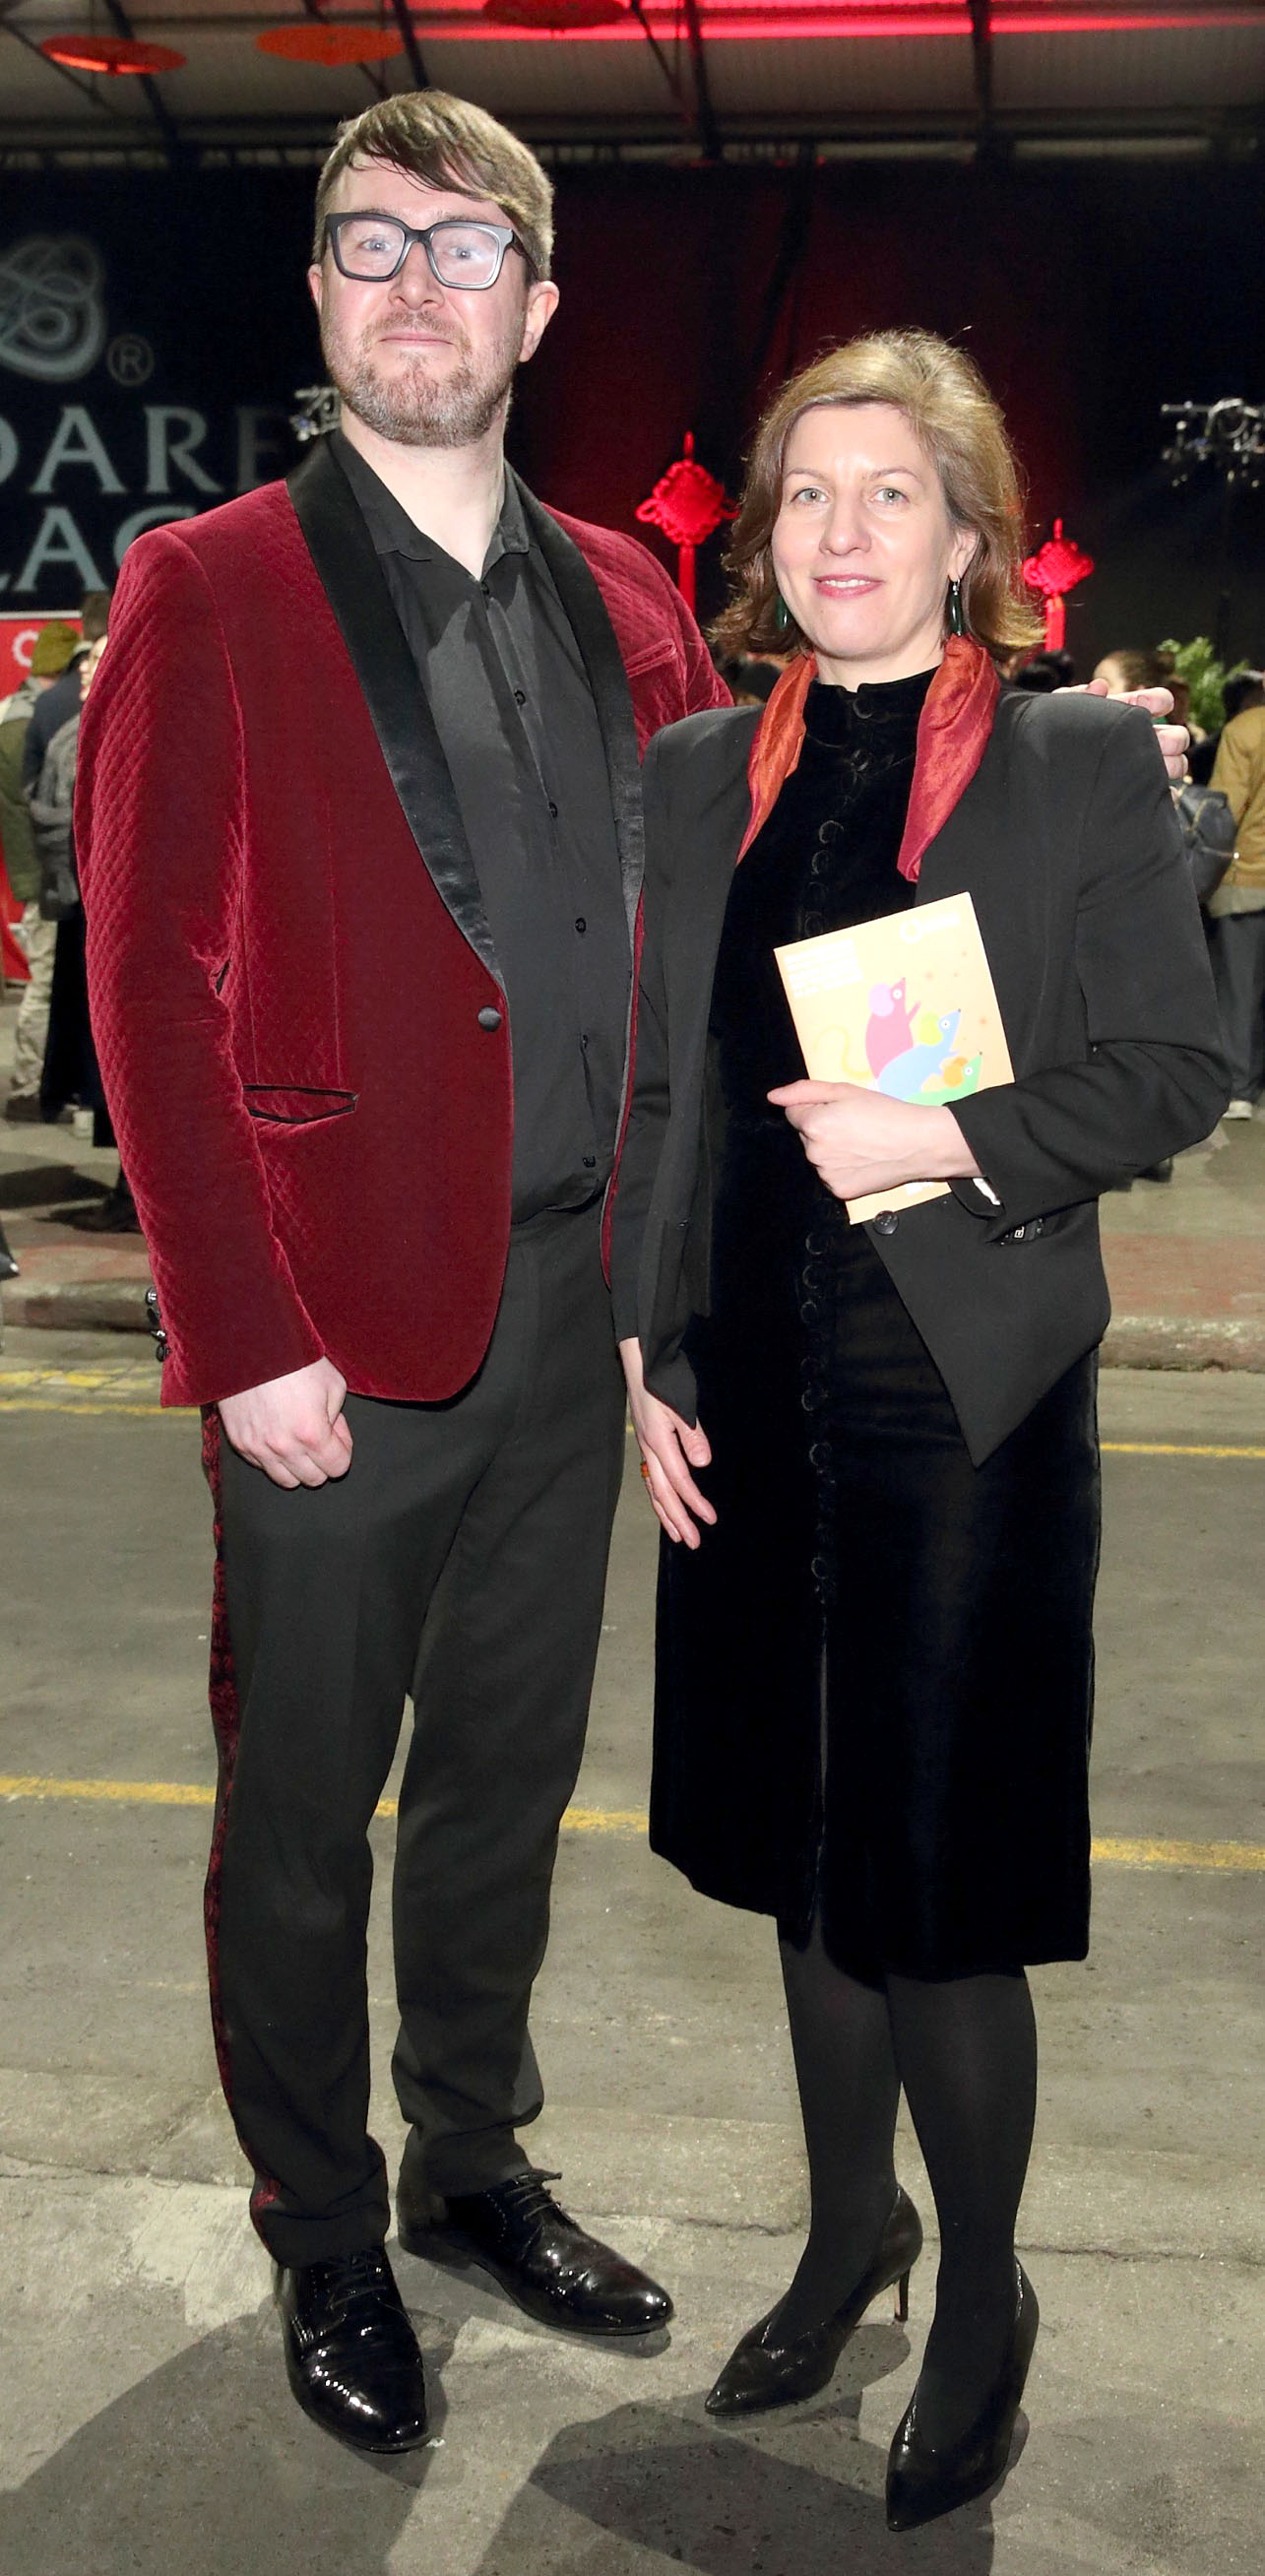 Joey Kavanagh and Aimee Van Wylick at the opening ceremony of Dublin Chinese New Year Festival 2020 which runs from 24th January - 10th February and celebrates the Year of the Rat.  Pic: Brian McEvoy Photography